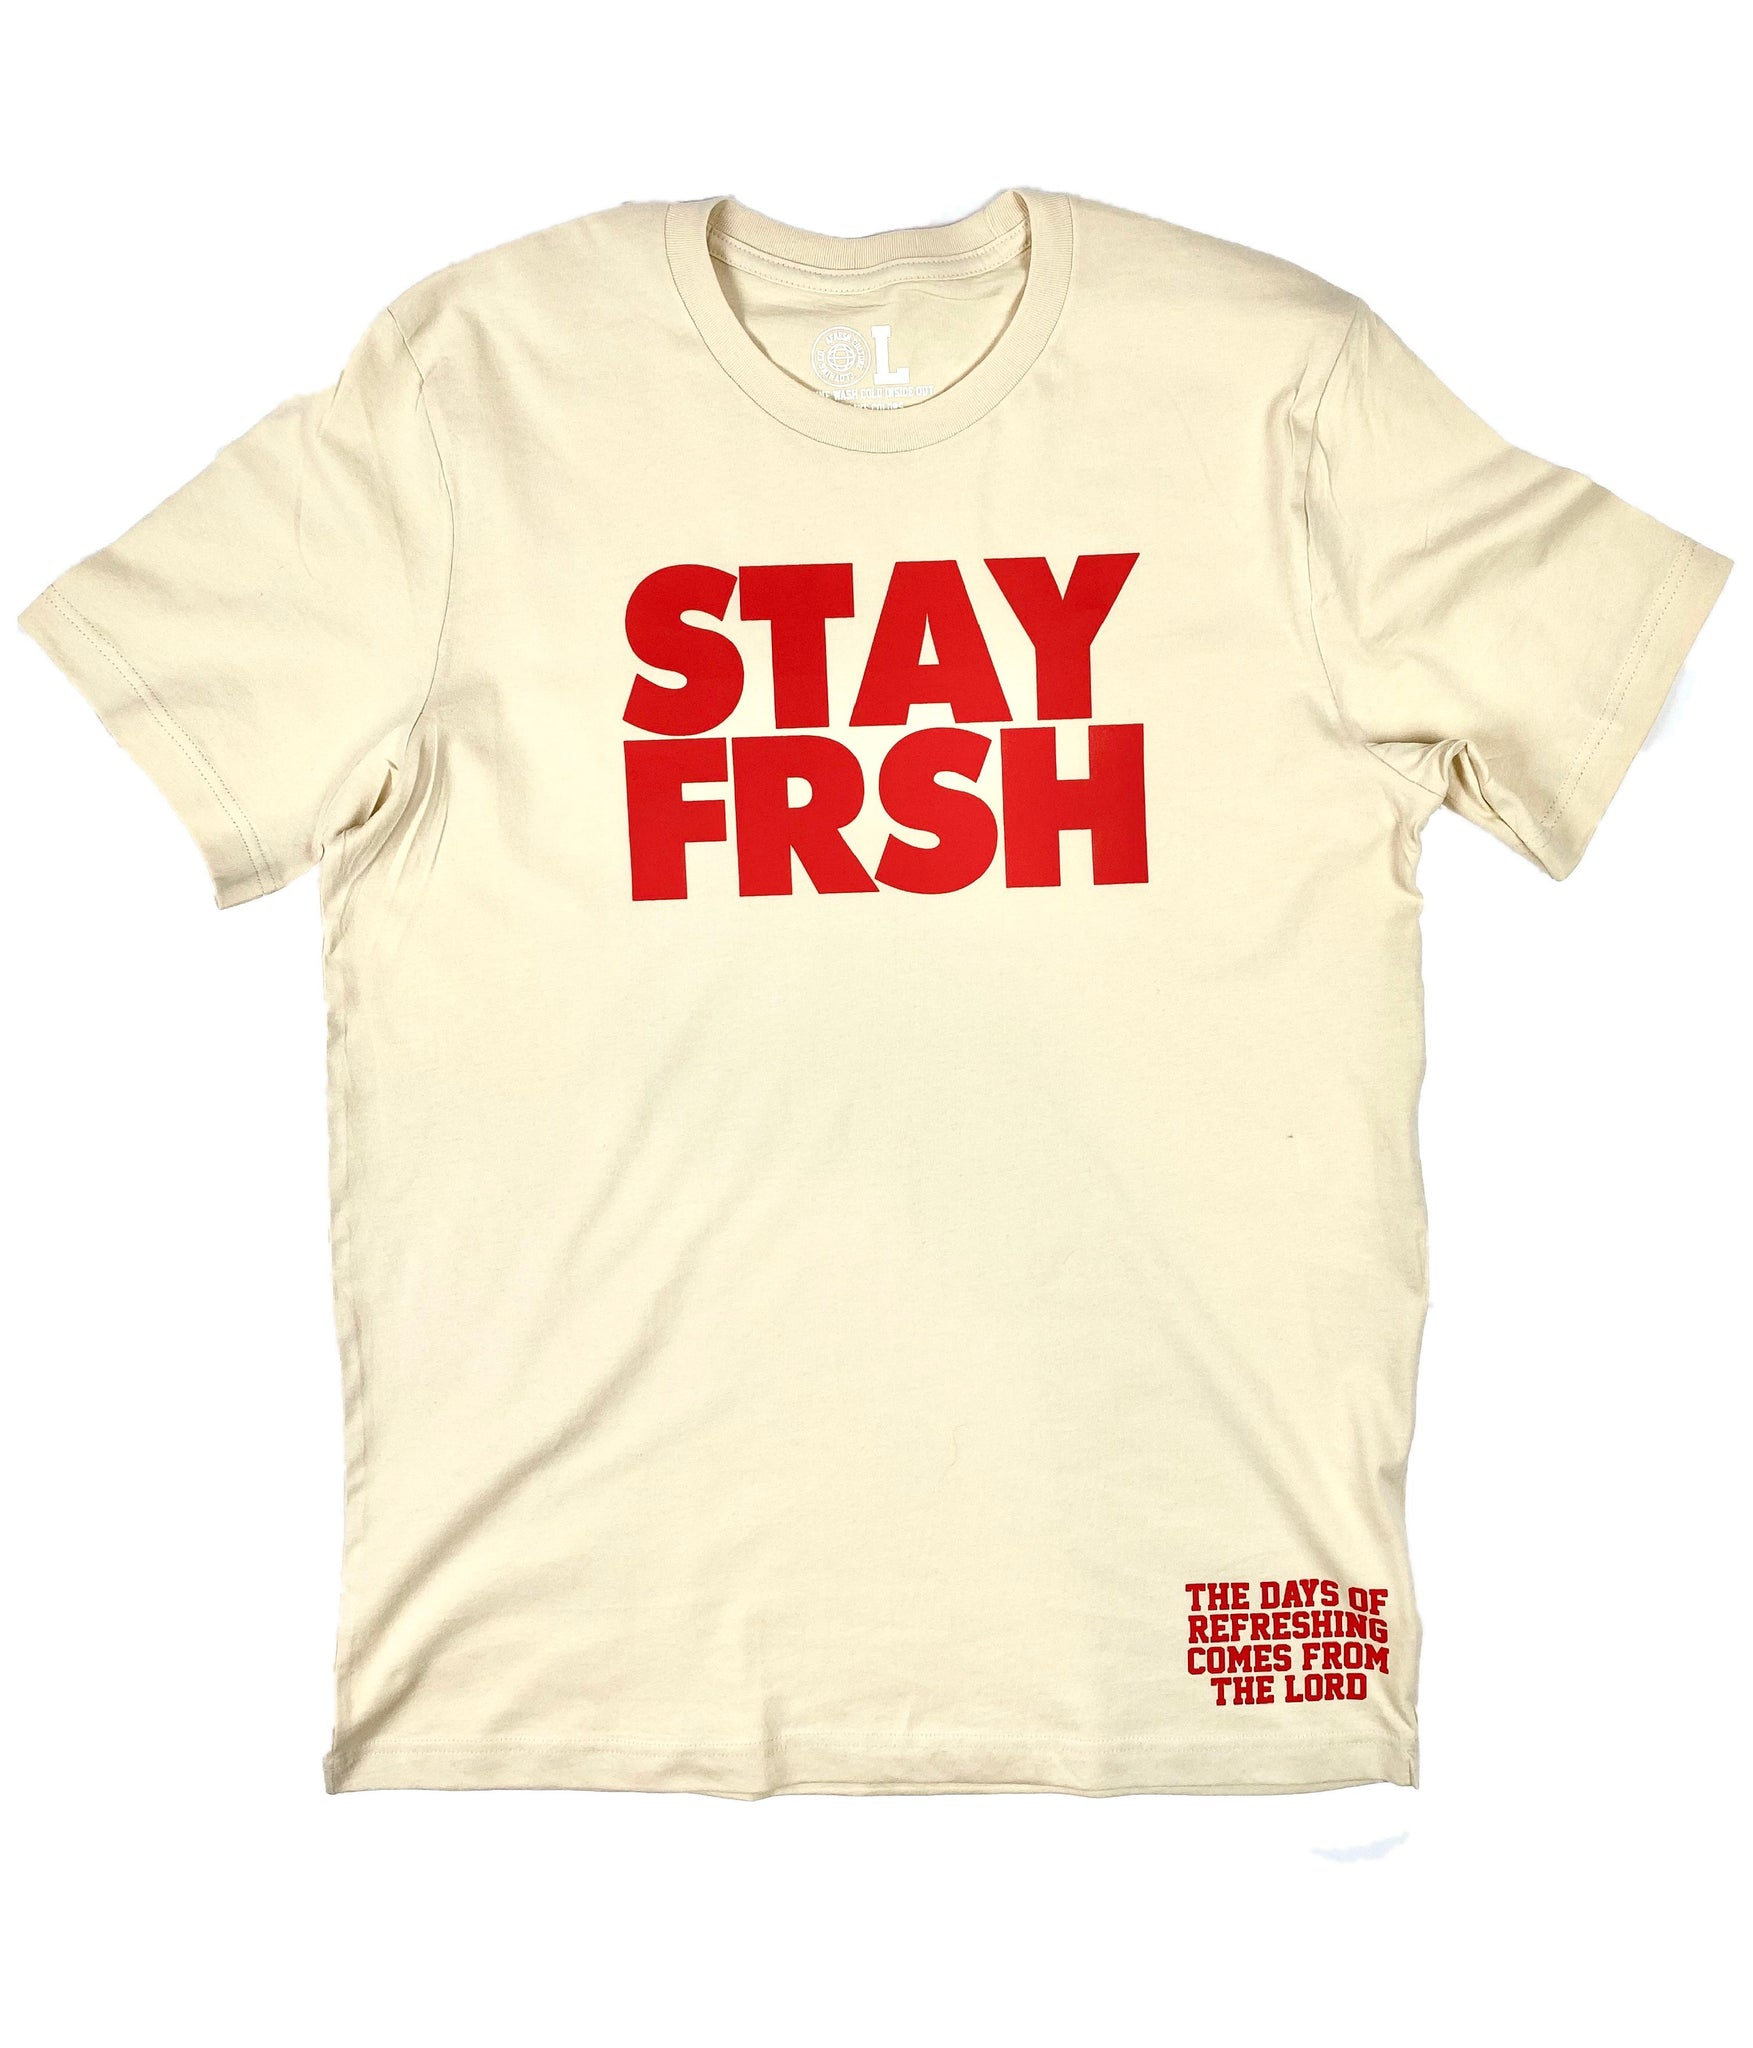 STAY FRSH Cream Berry Tee